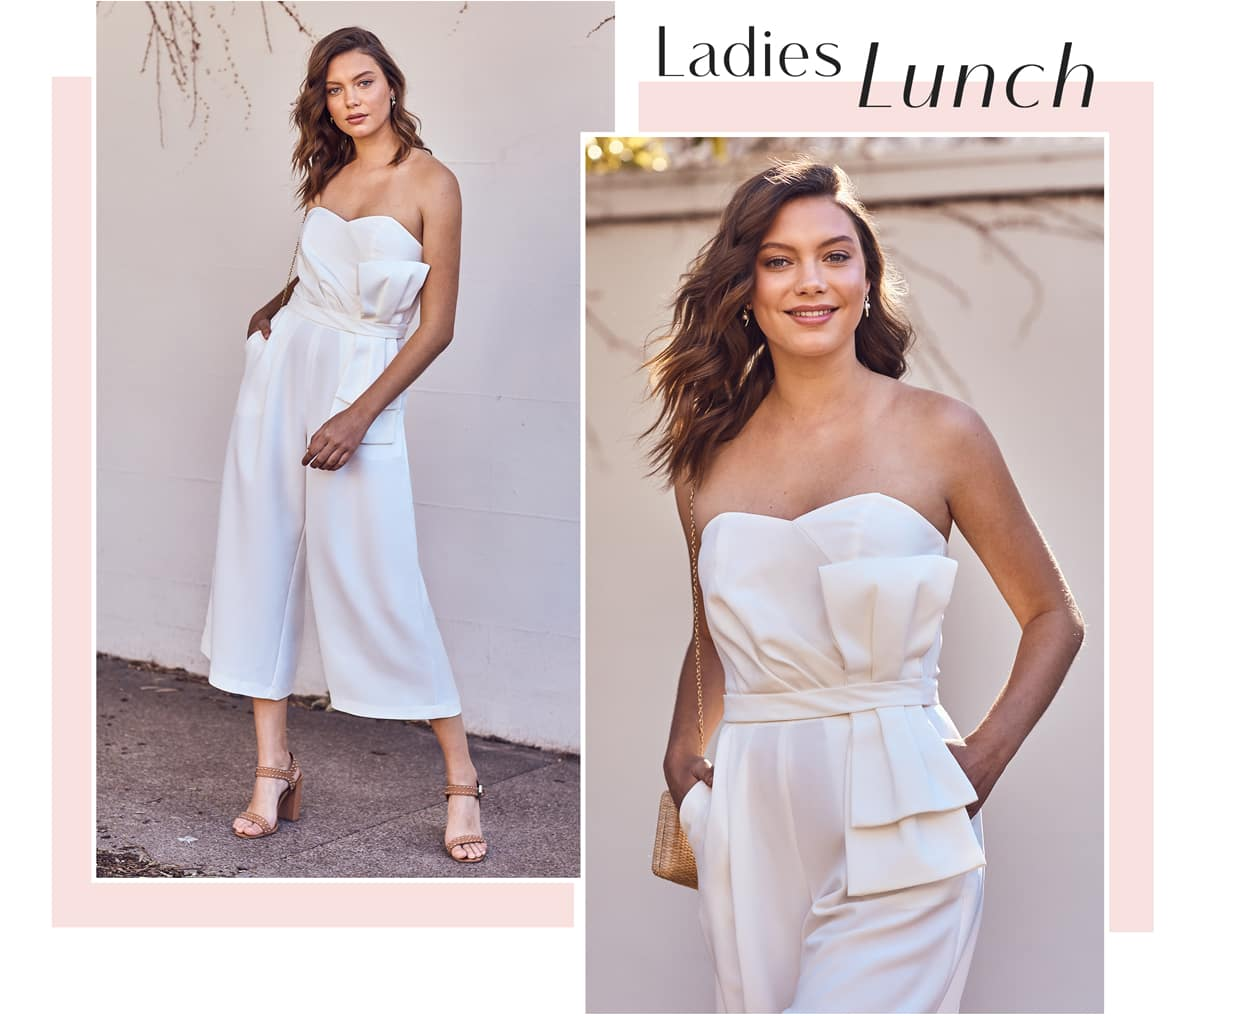 Ladies Lunch